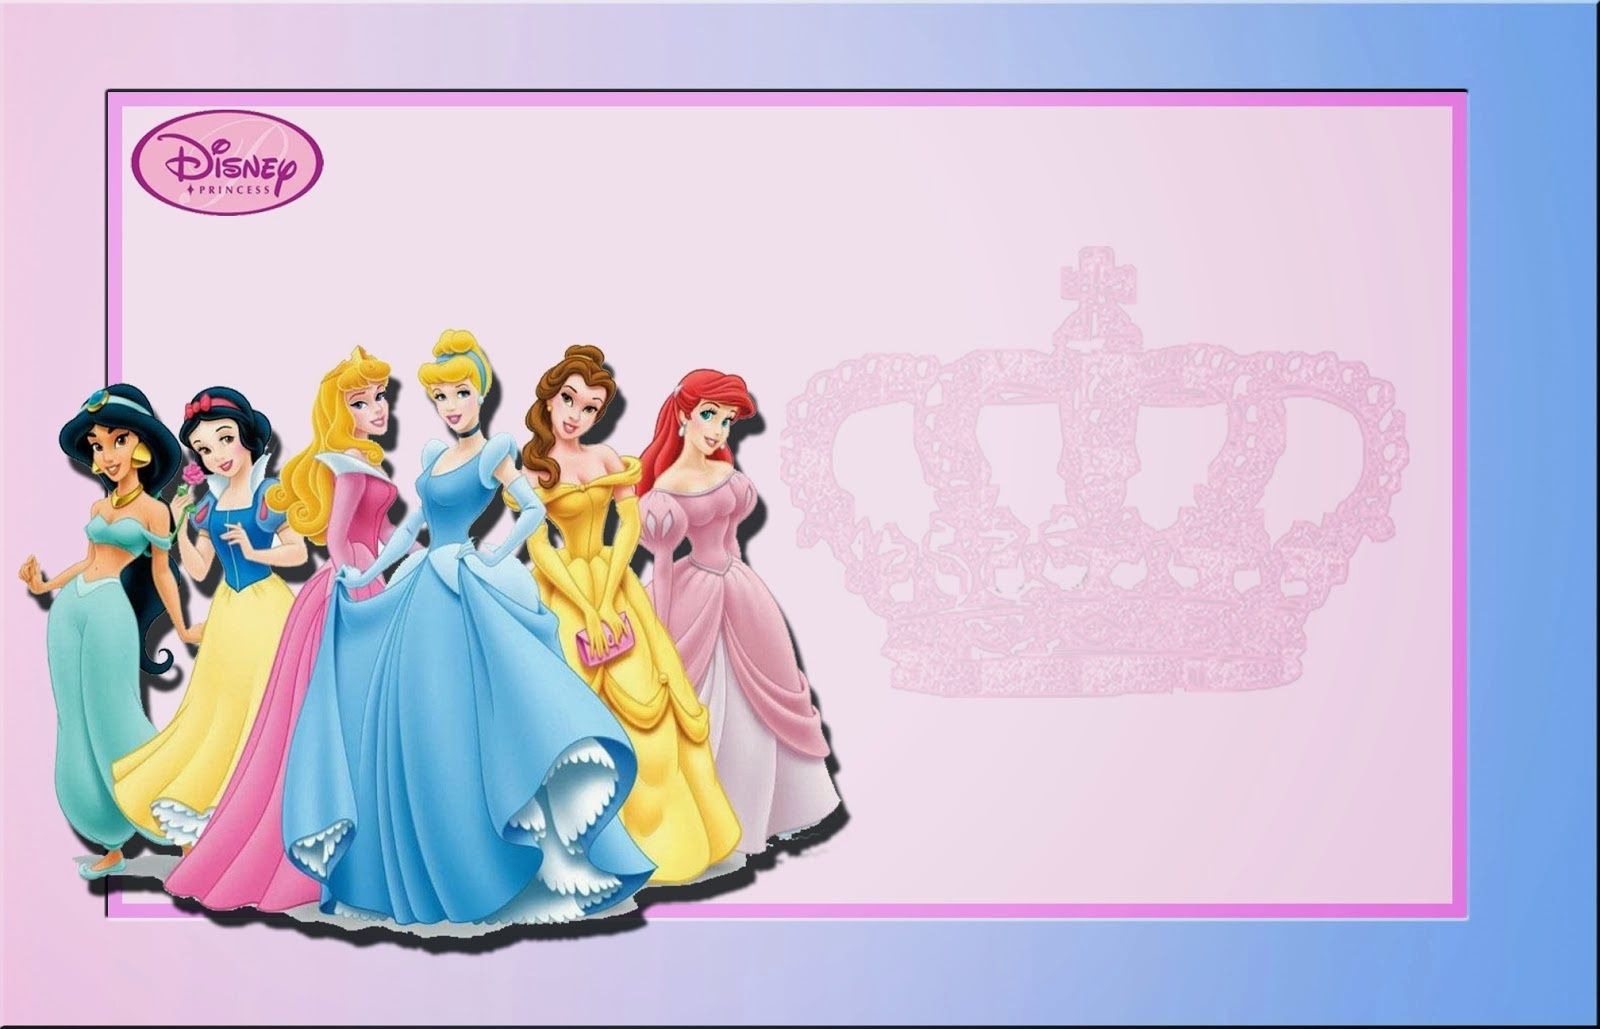 Disney Princess: Free Printable Invitations Or Photo Frames. - Oh My - Free Printable Princess Invitation Cards